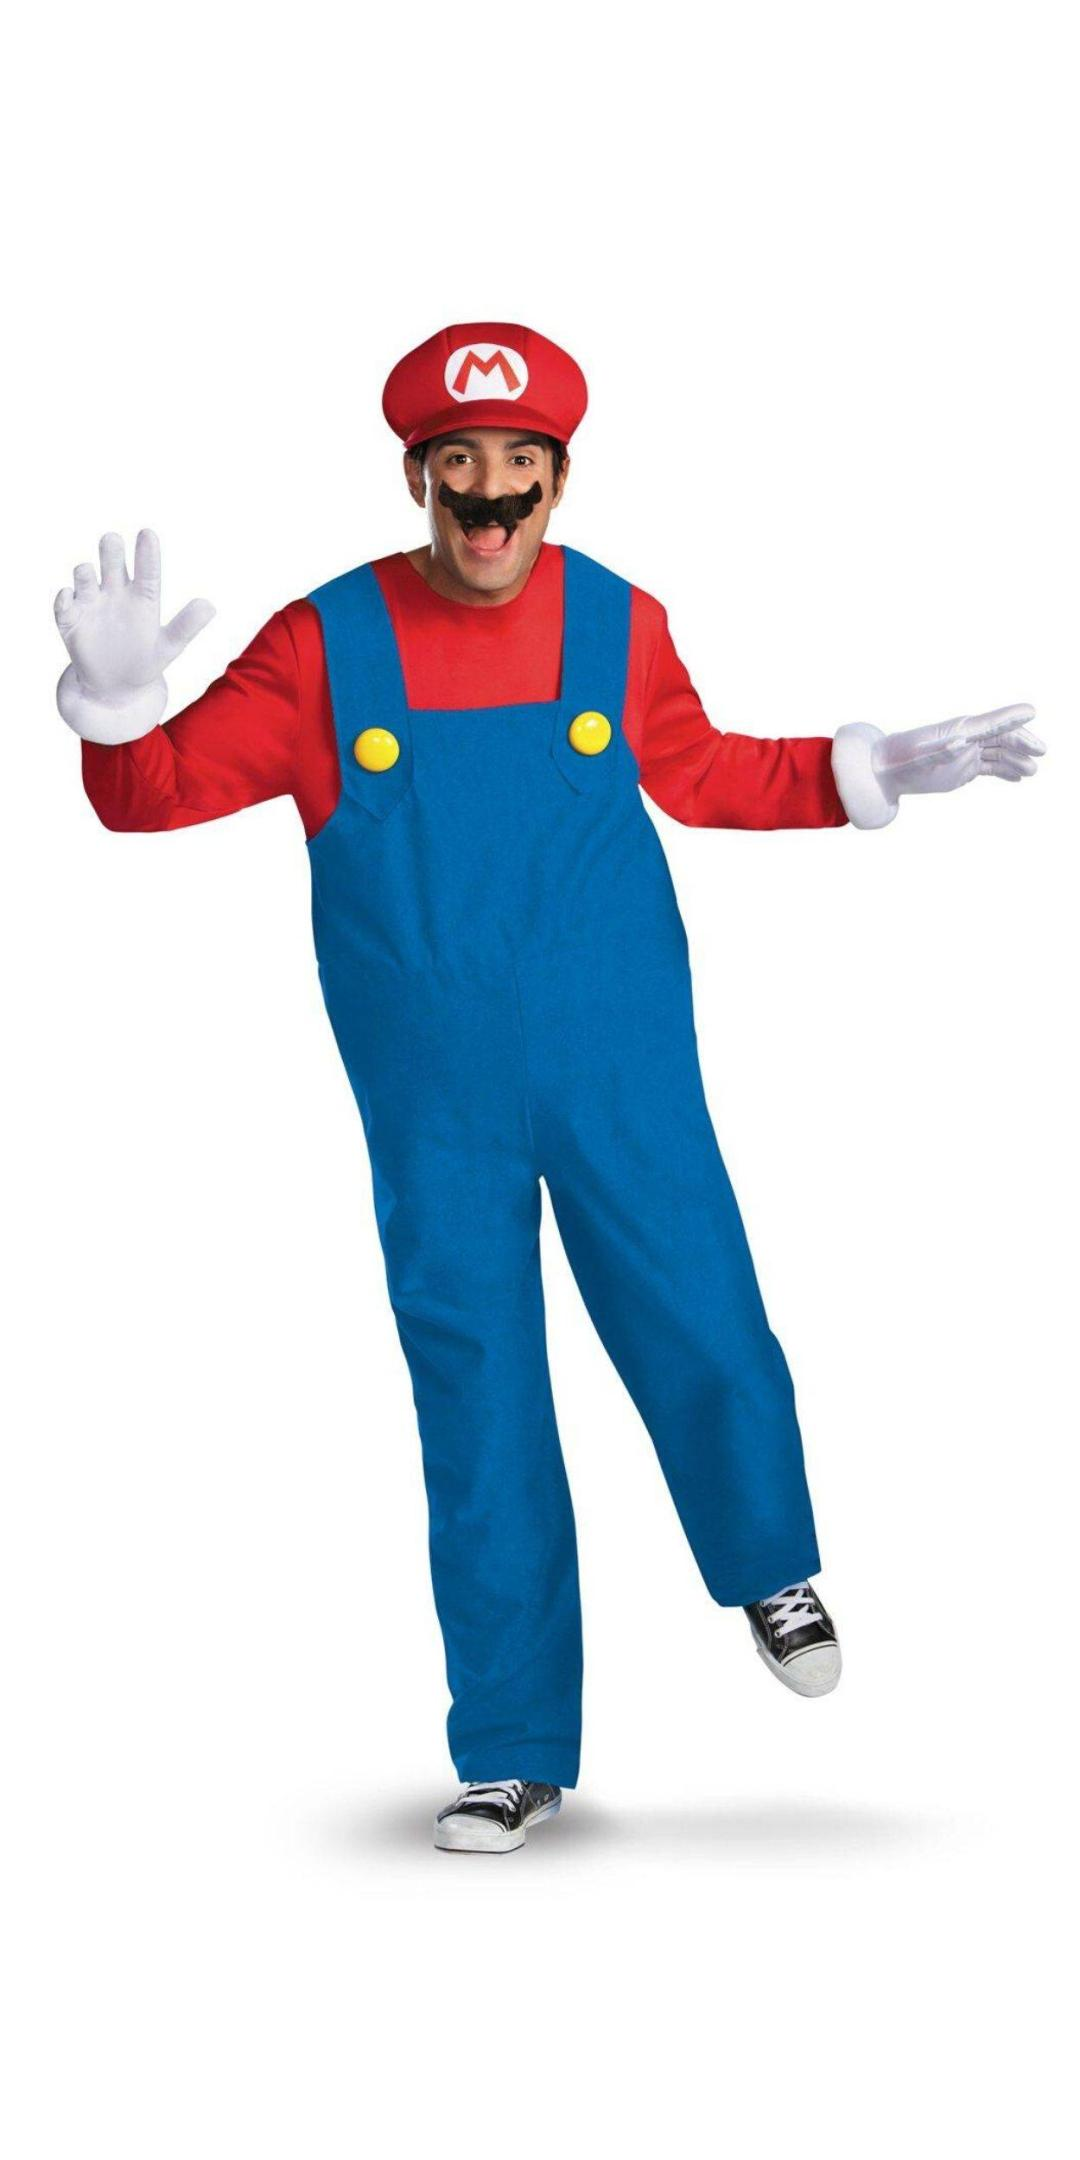 Man in Mario Party Costume